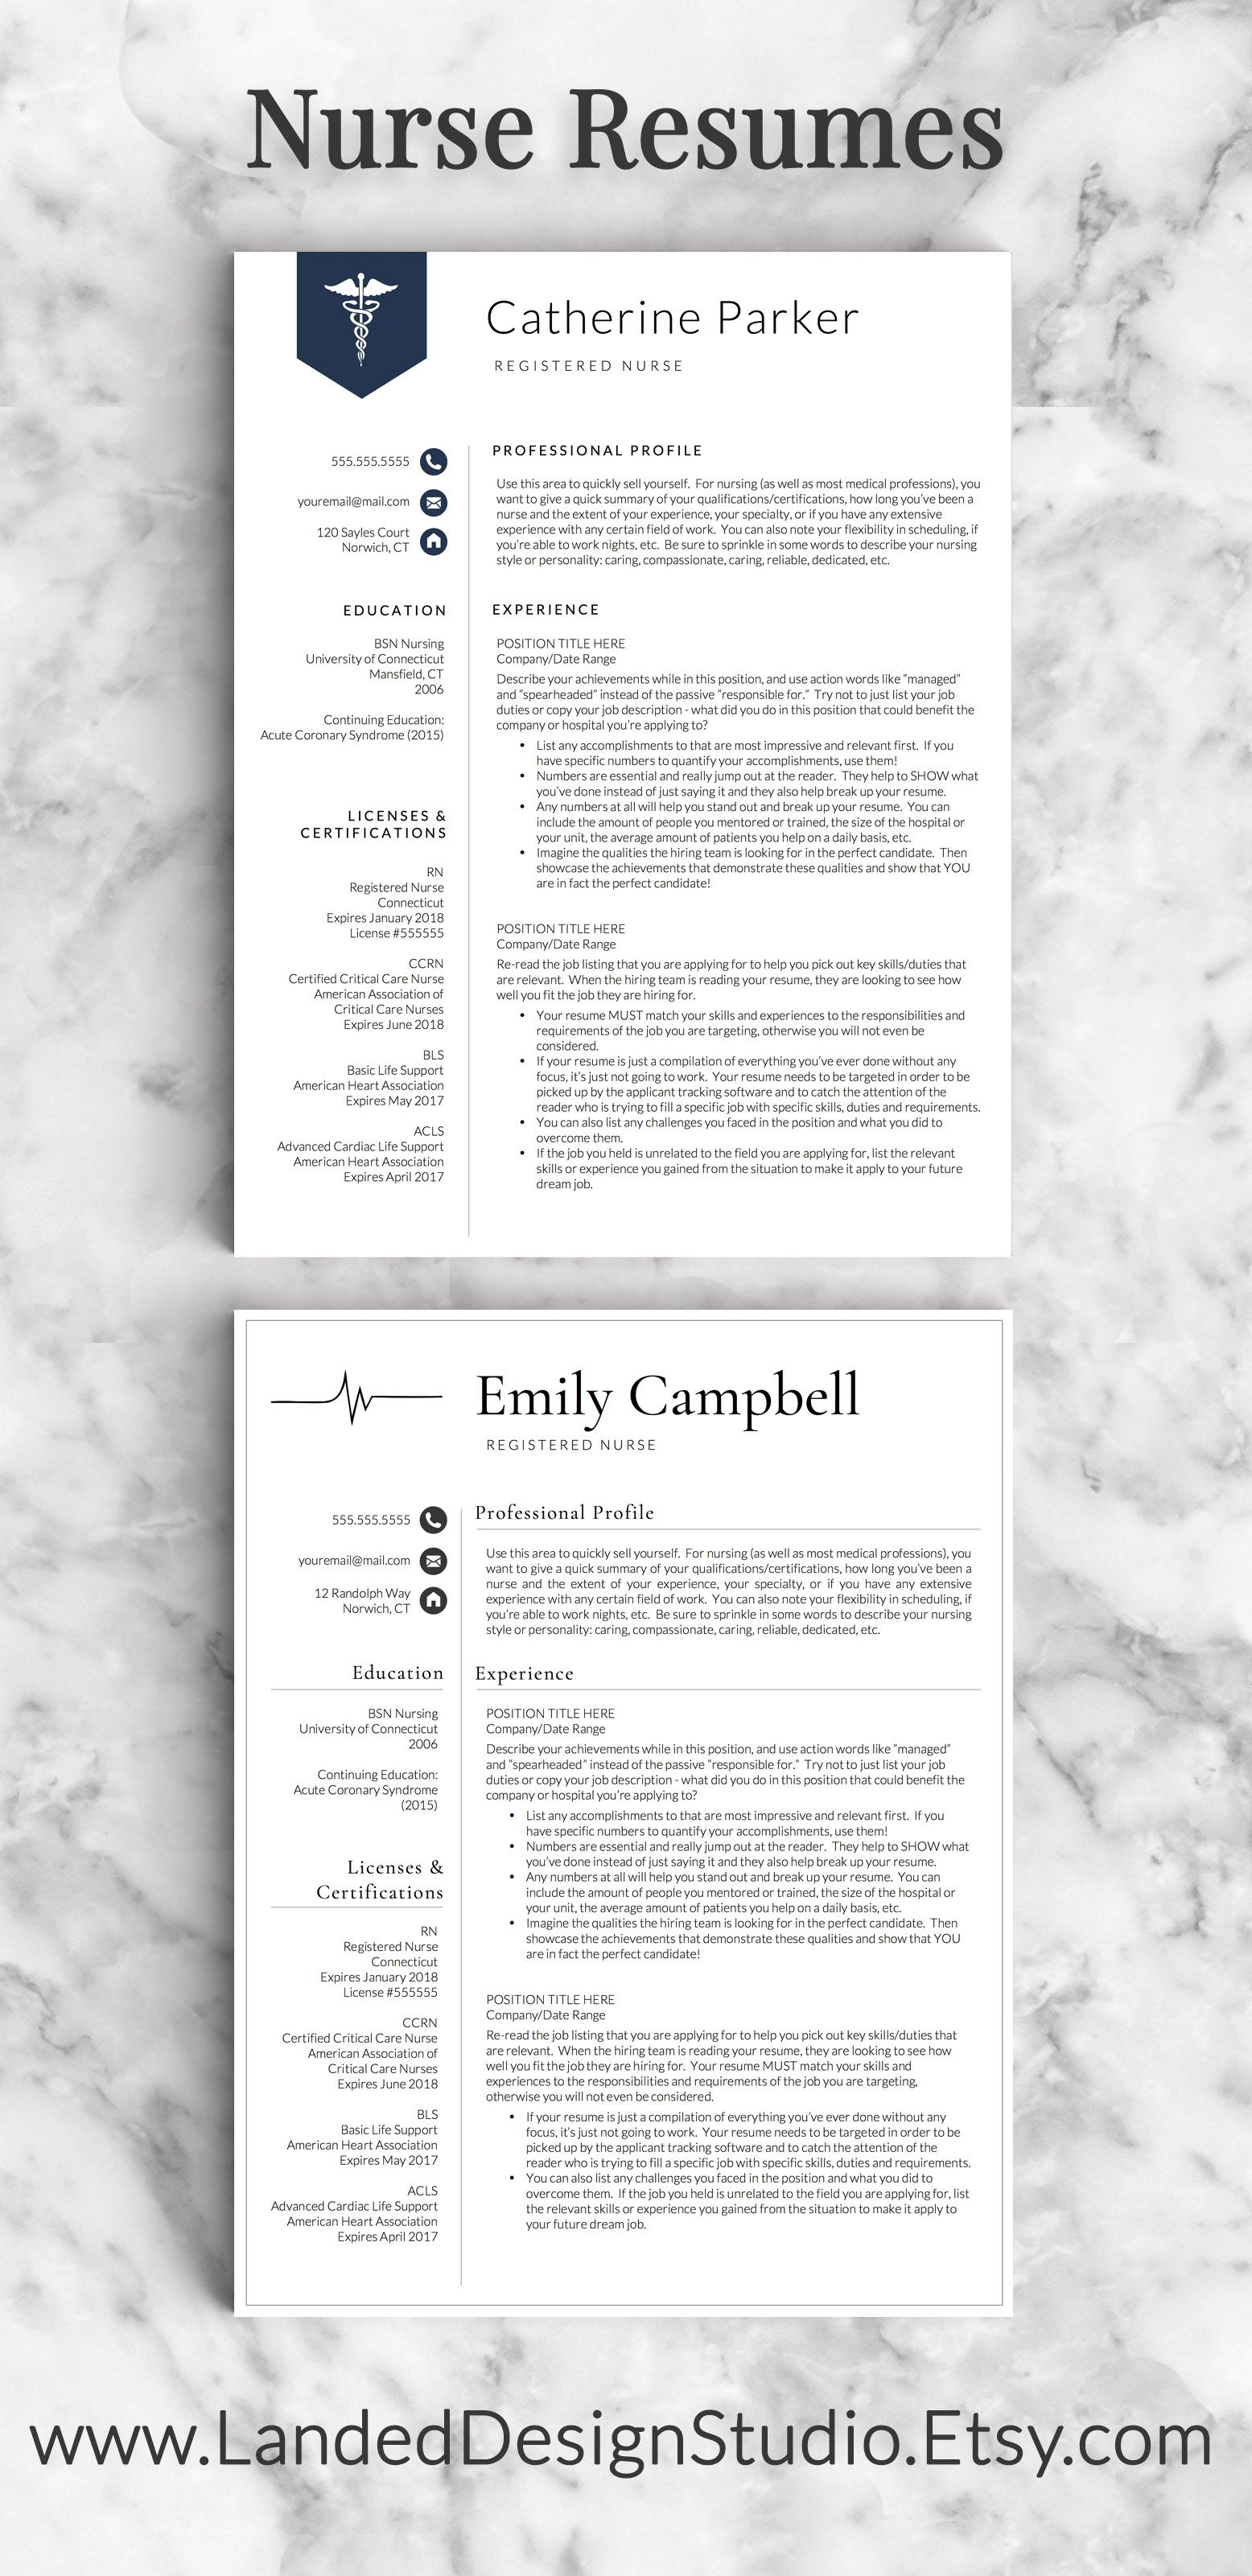 Nurse resume templates - makes me want to hurry up and finish ...